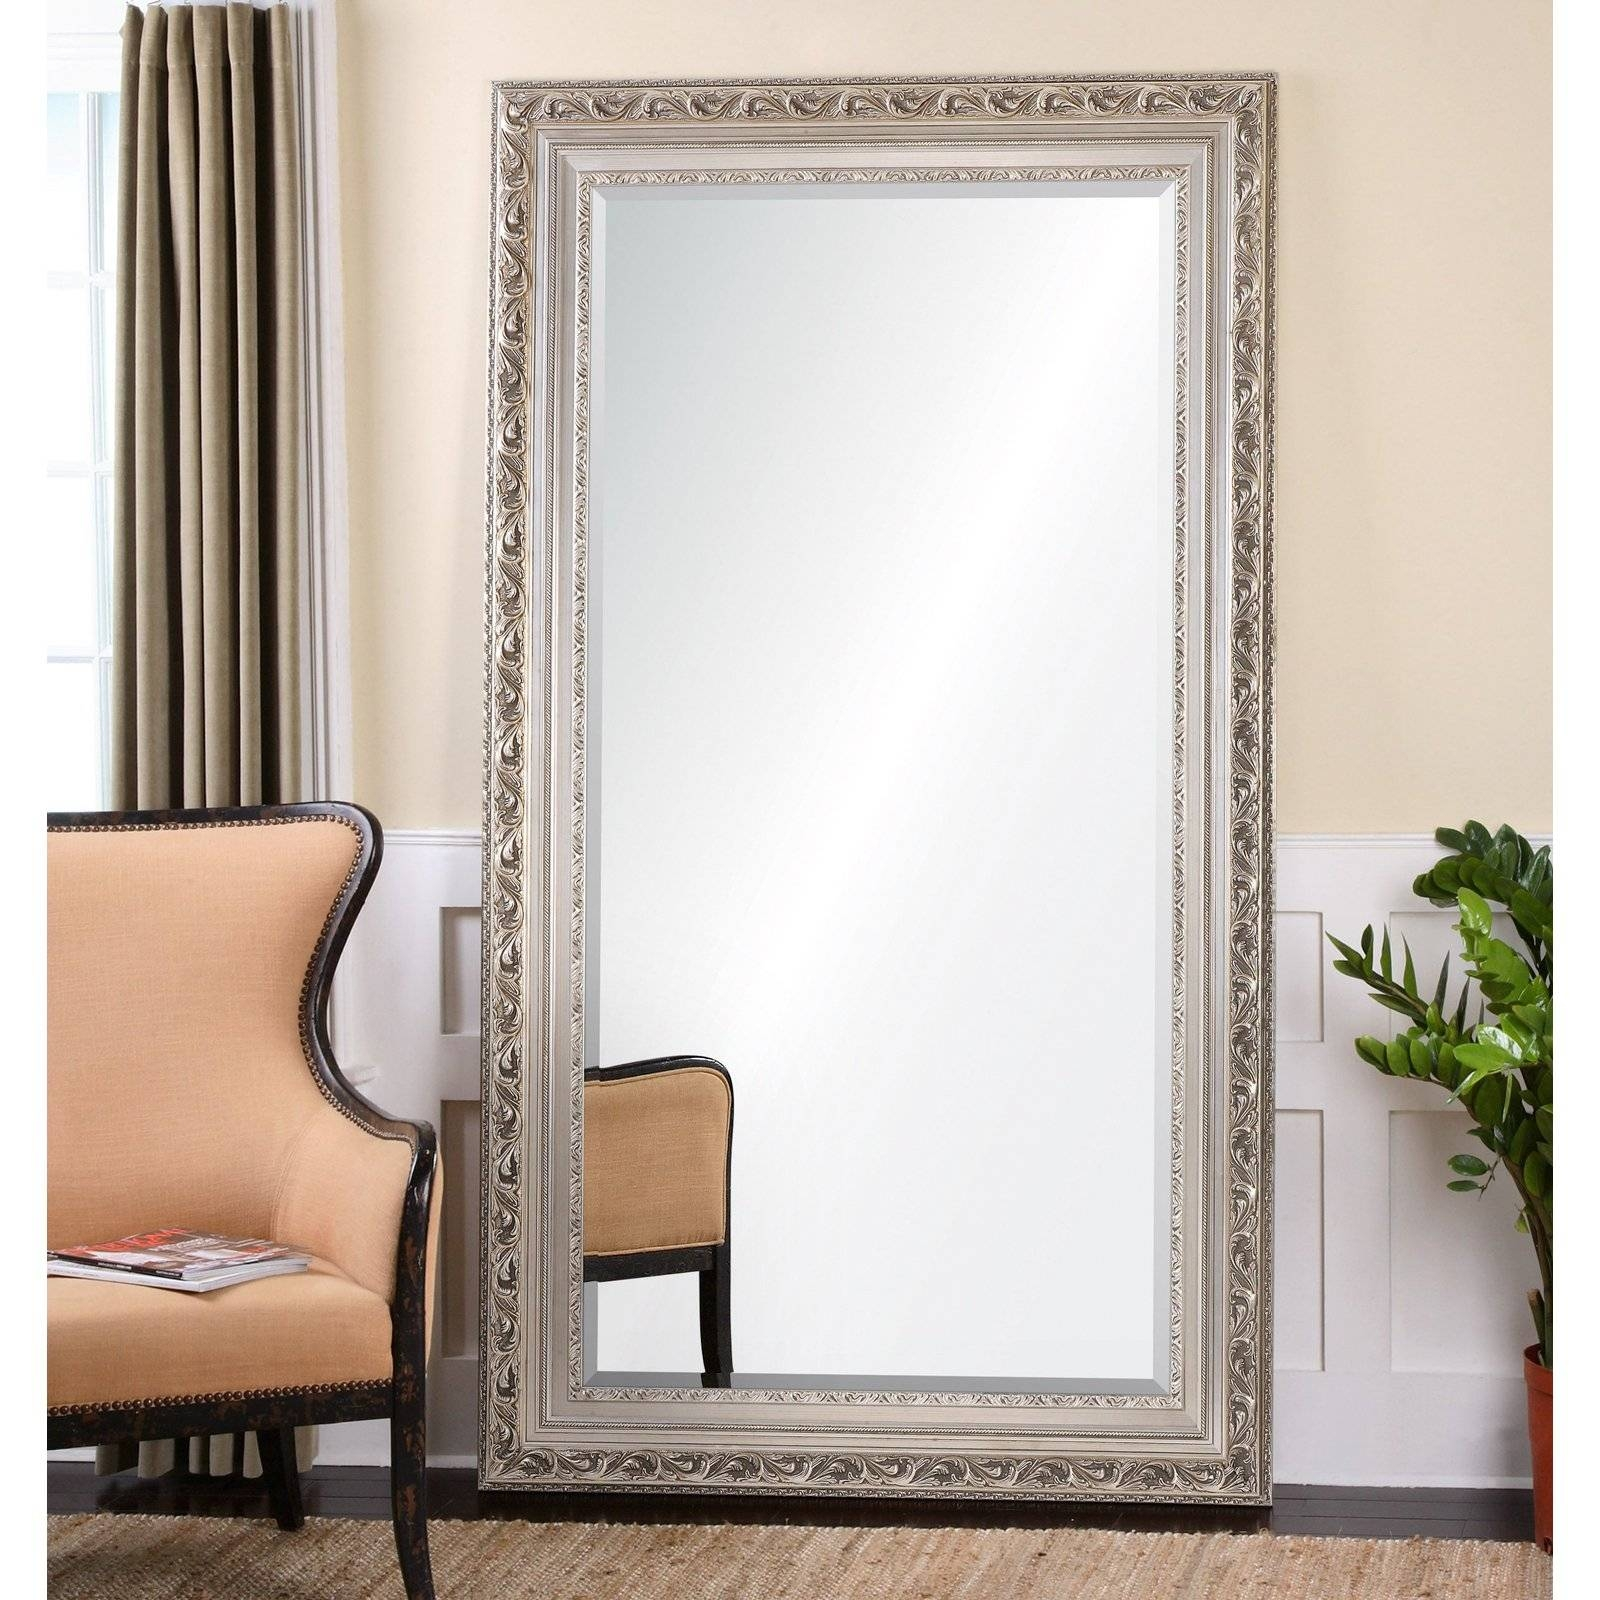 Cheap Full Length Mirrors 26 Stunning Decor With Diy Full Length Pertaining To Full Length Silver Mirrors (View 5 of 25)